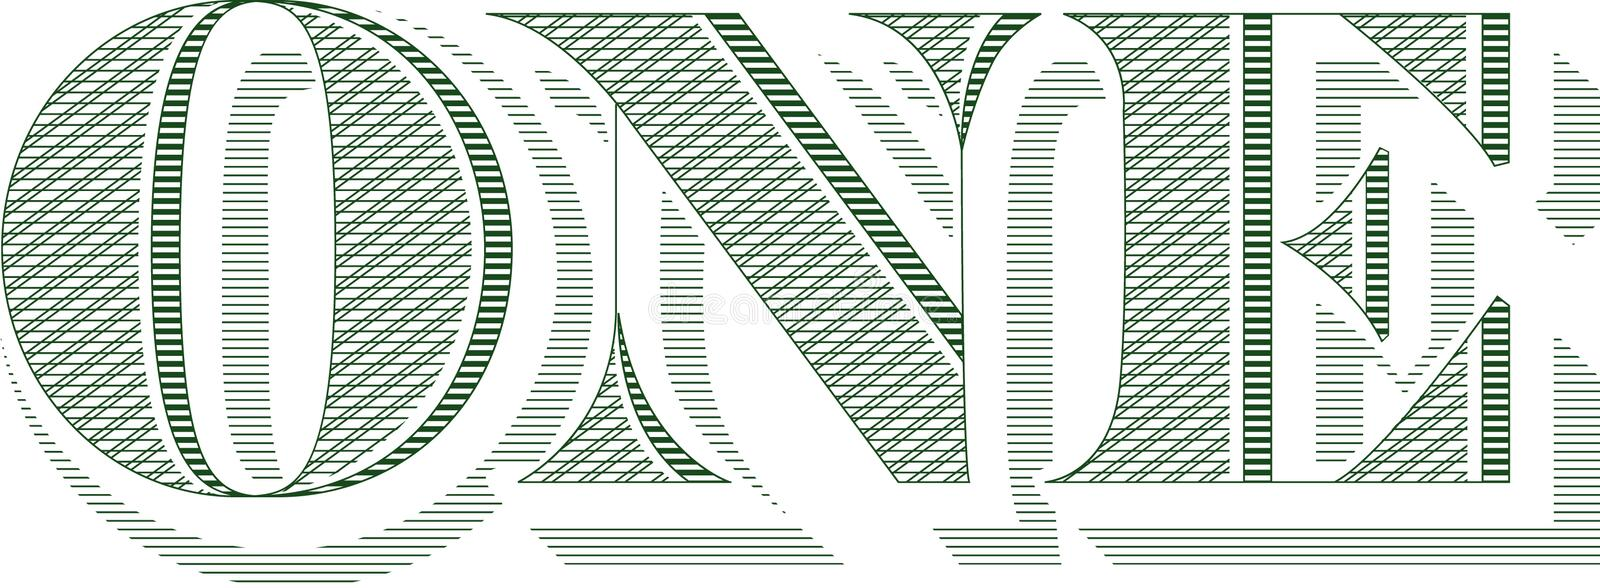 The word ONE from a bill. The word ONE from a dollar bill isolated on a white background. Also in vector format